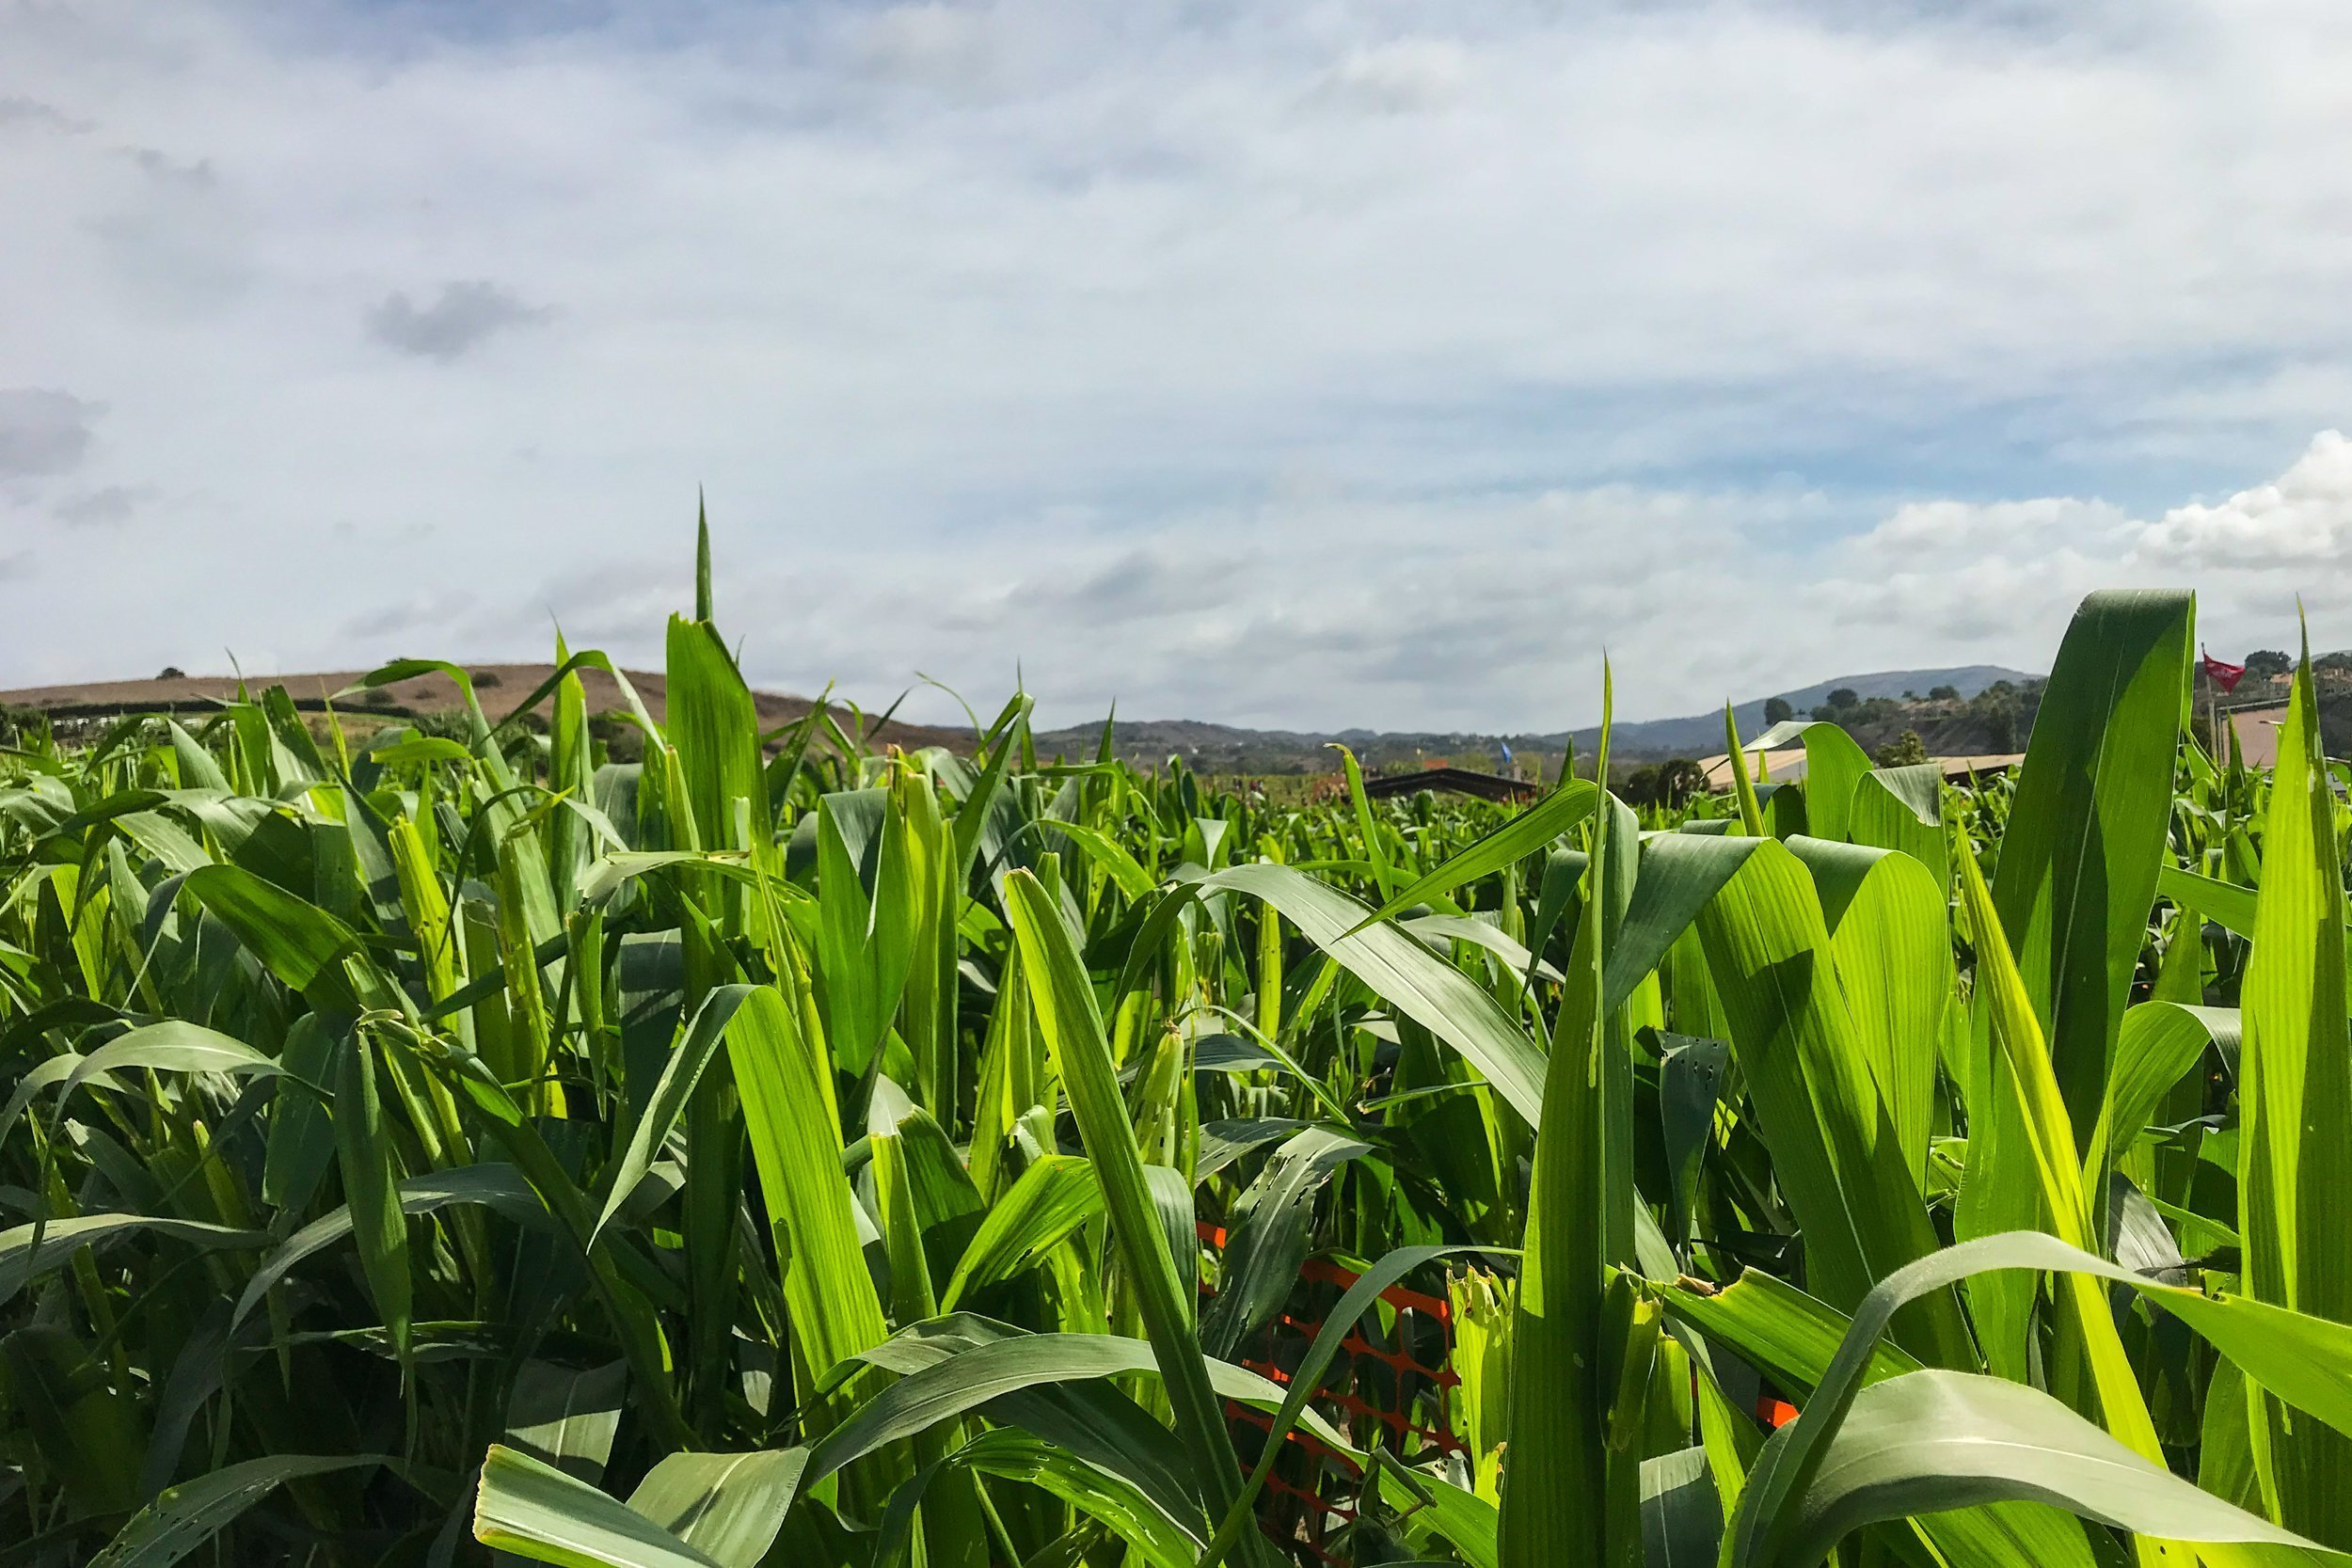 Corn Plants And Leaves In Field